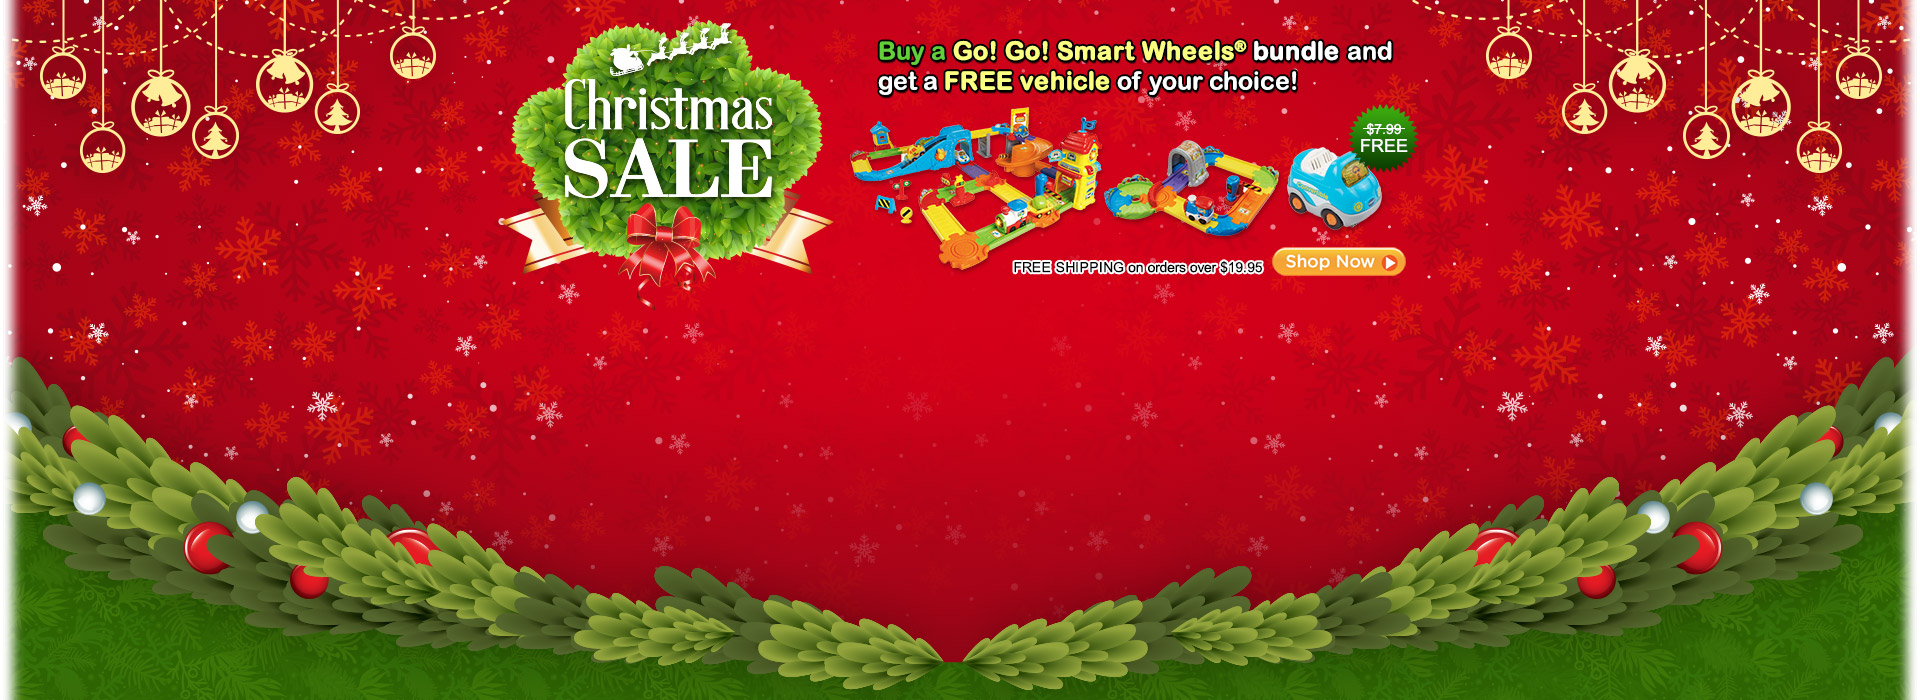 Christmas Sale - Buy a Go! Go! Smart Wheels bundle and get a FREE vehicle of your choice